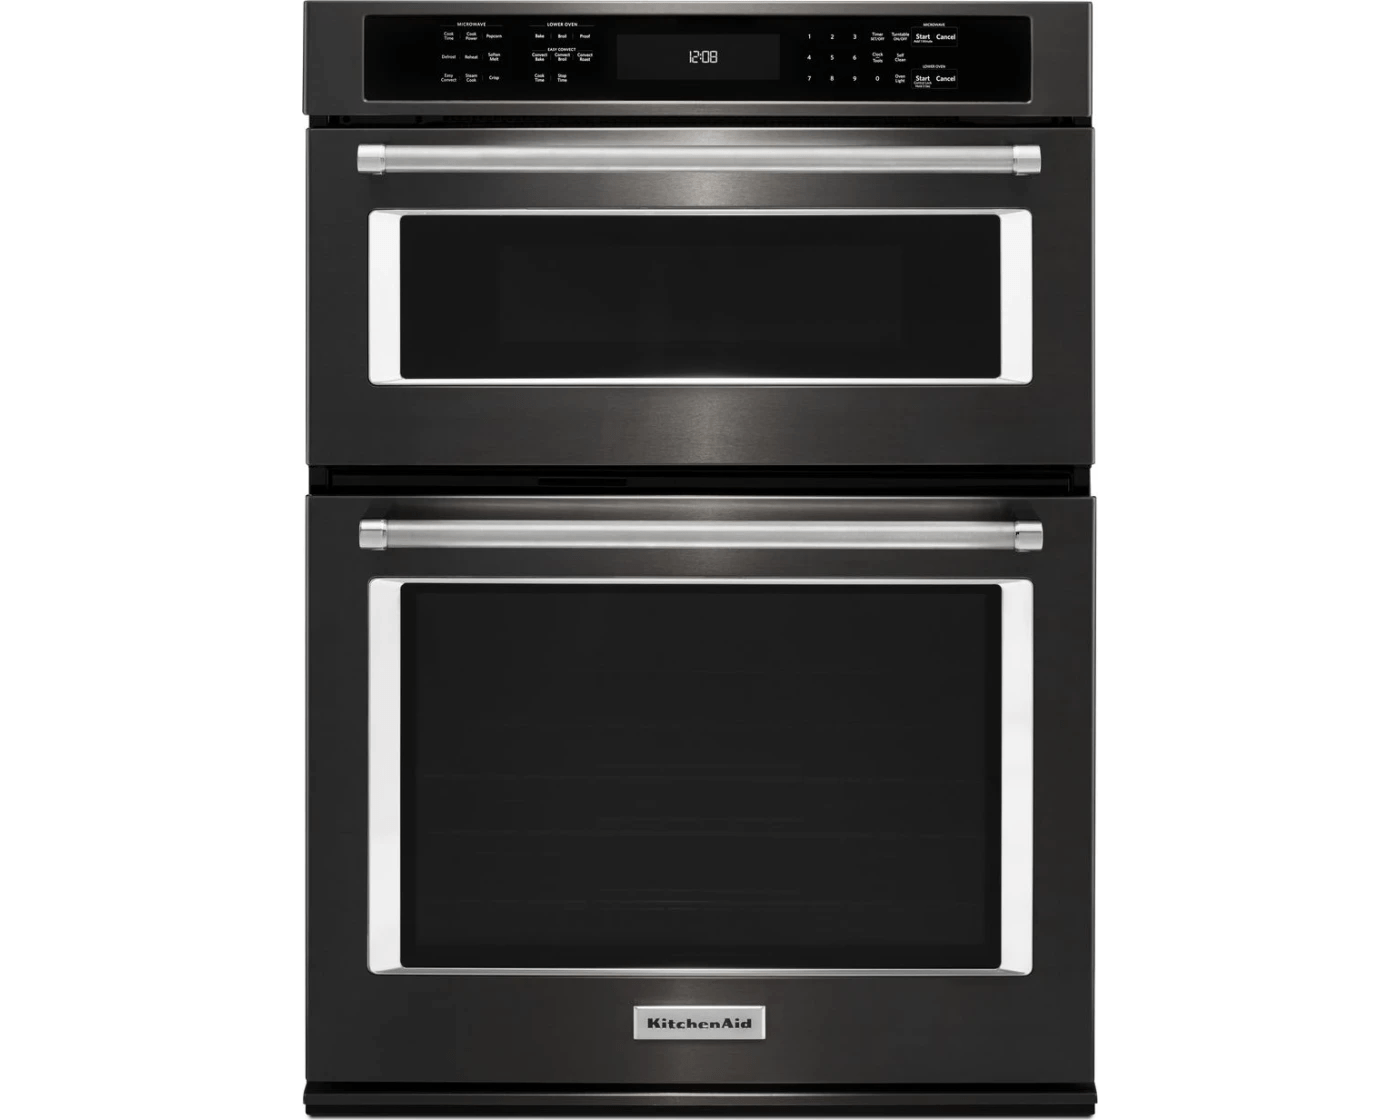 koce500ebs by kitchenaid combination wall ovens goedekers com